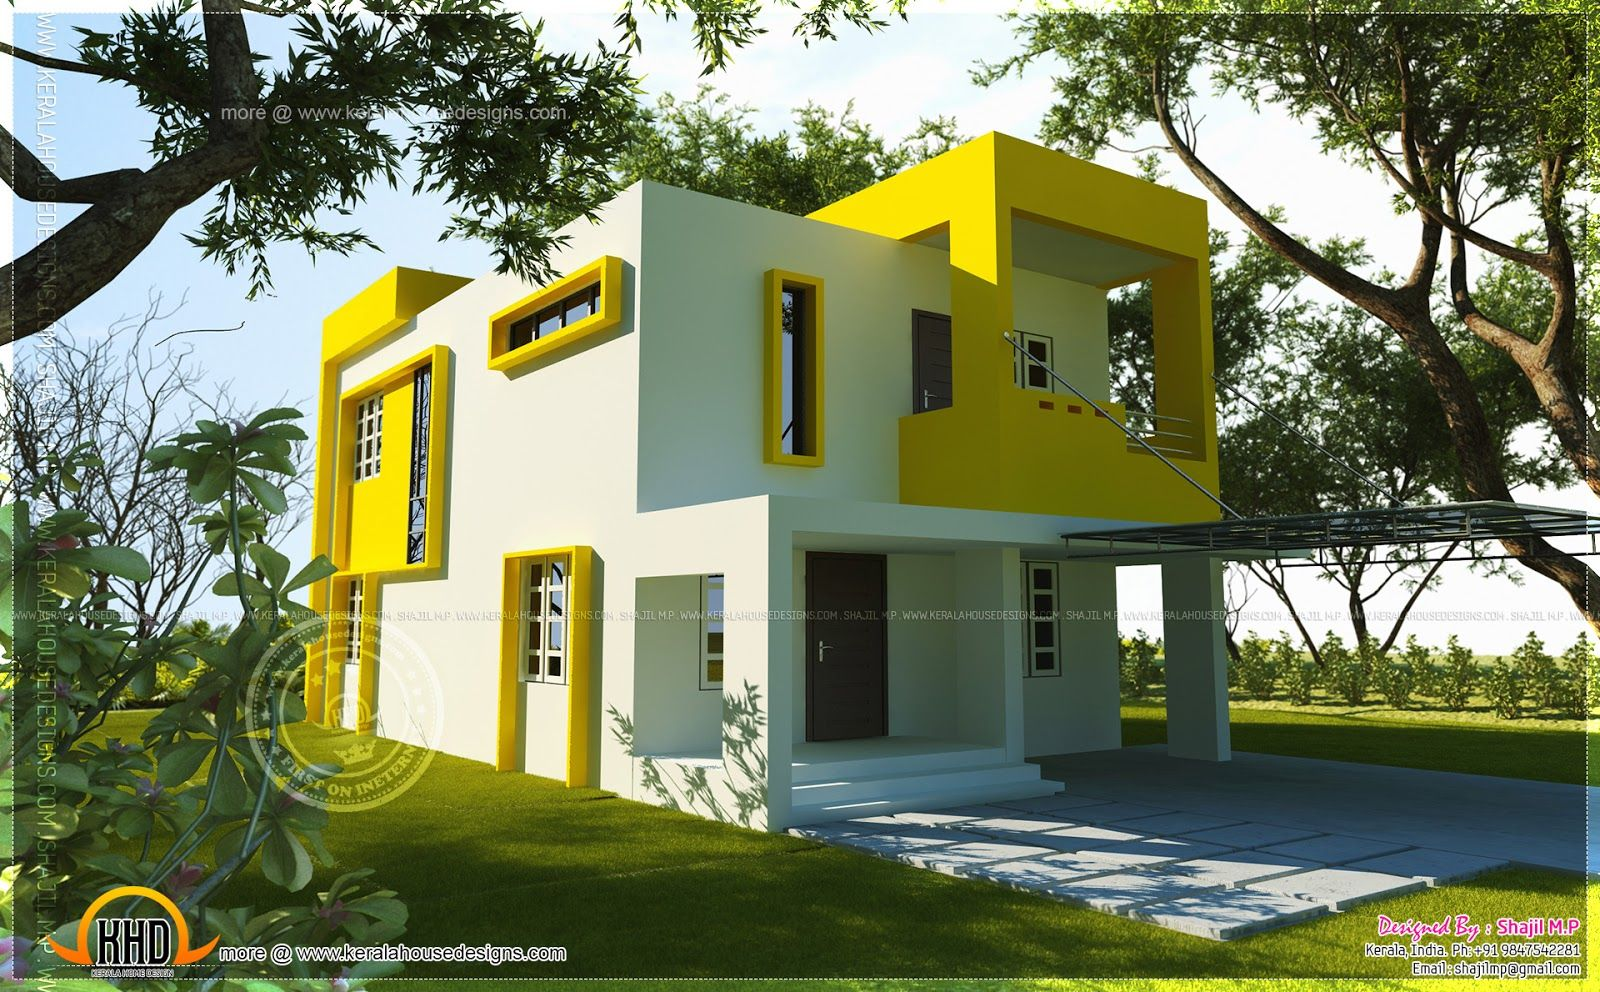 Small contemporary house square feet indian house plans square feet contemporary home exterior Indian small house exterior design